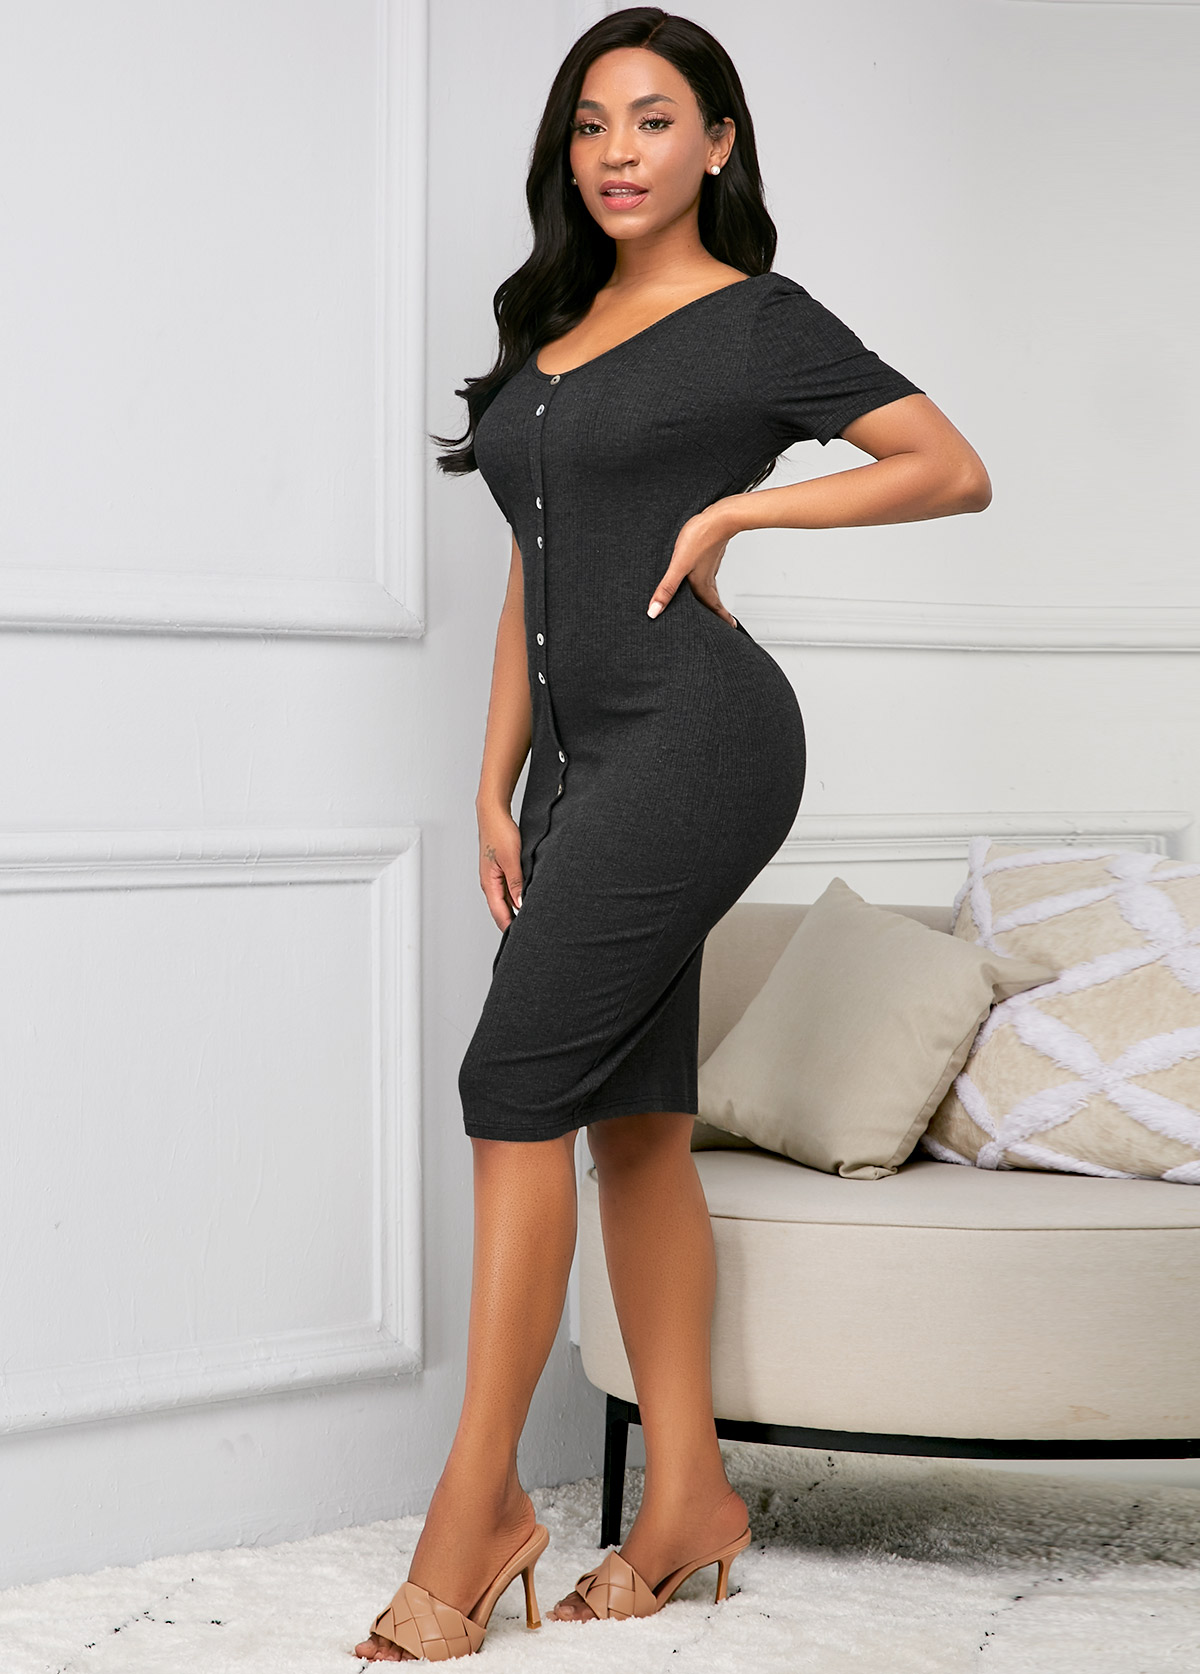 Short Sleeve Button Up Black Sheath Dress